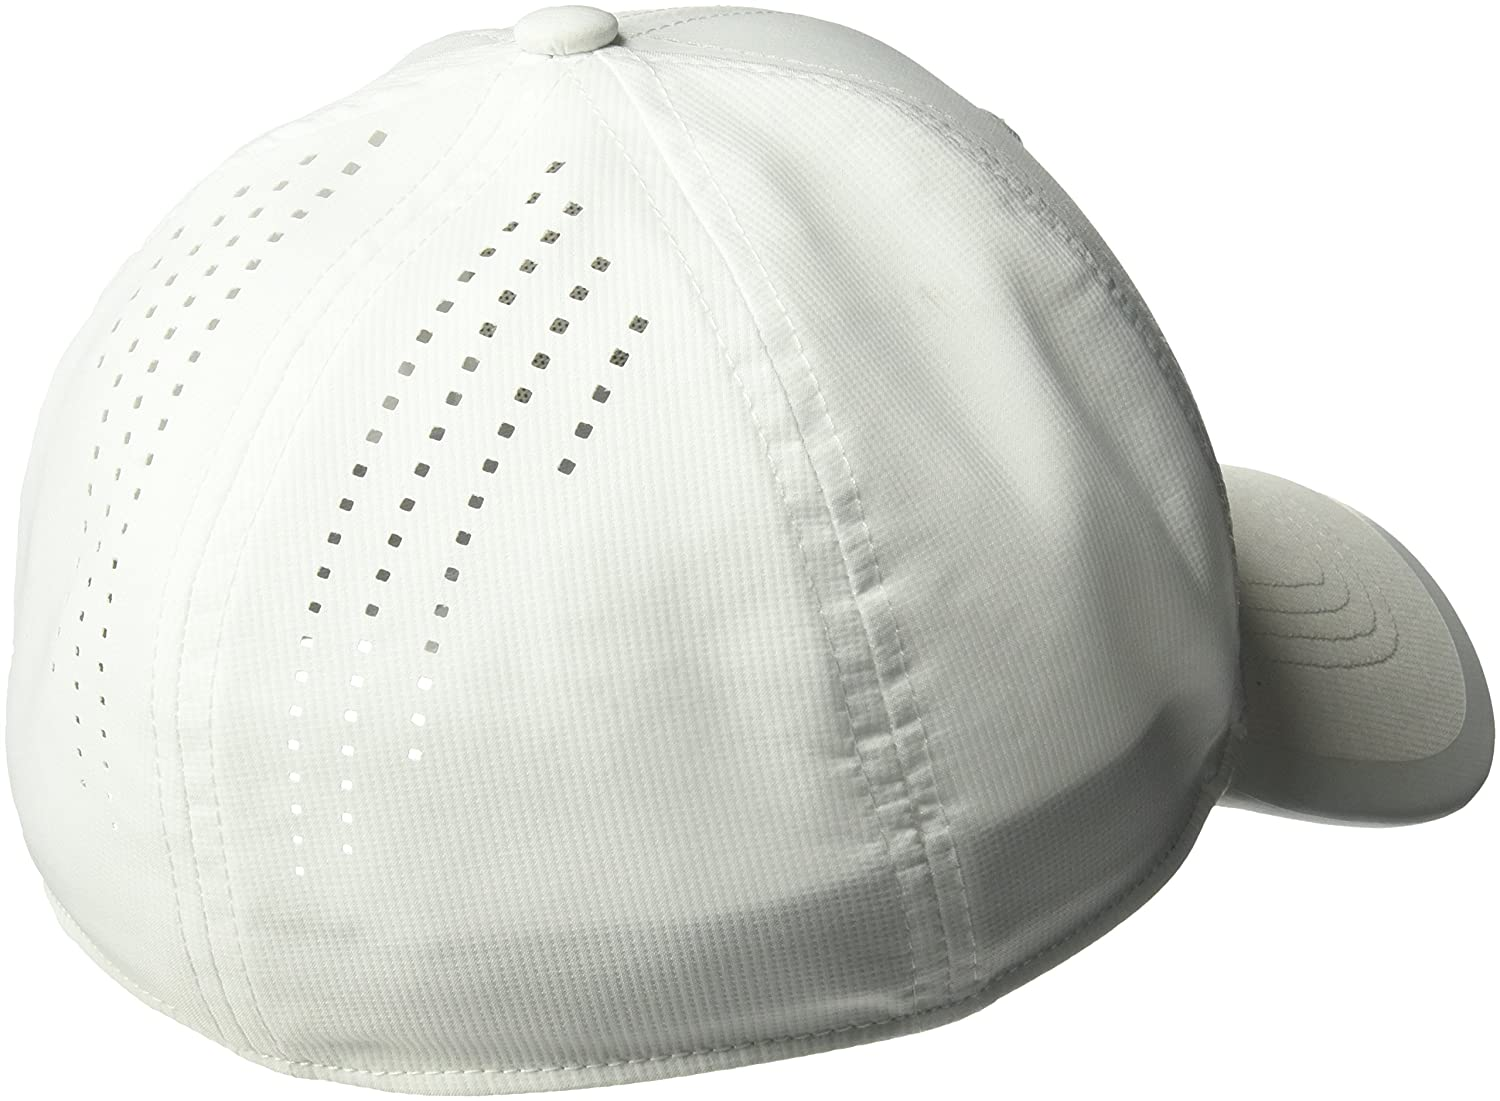 c127dc68d45 Amazon.com  Under Armour Men s Threadborne Training Cap  Sports   Outdoors